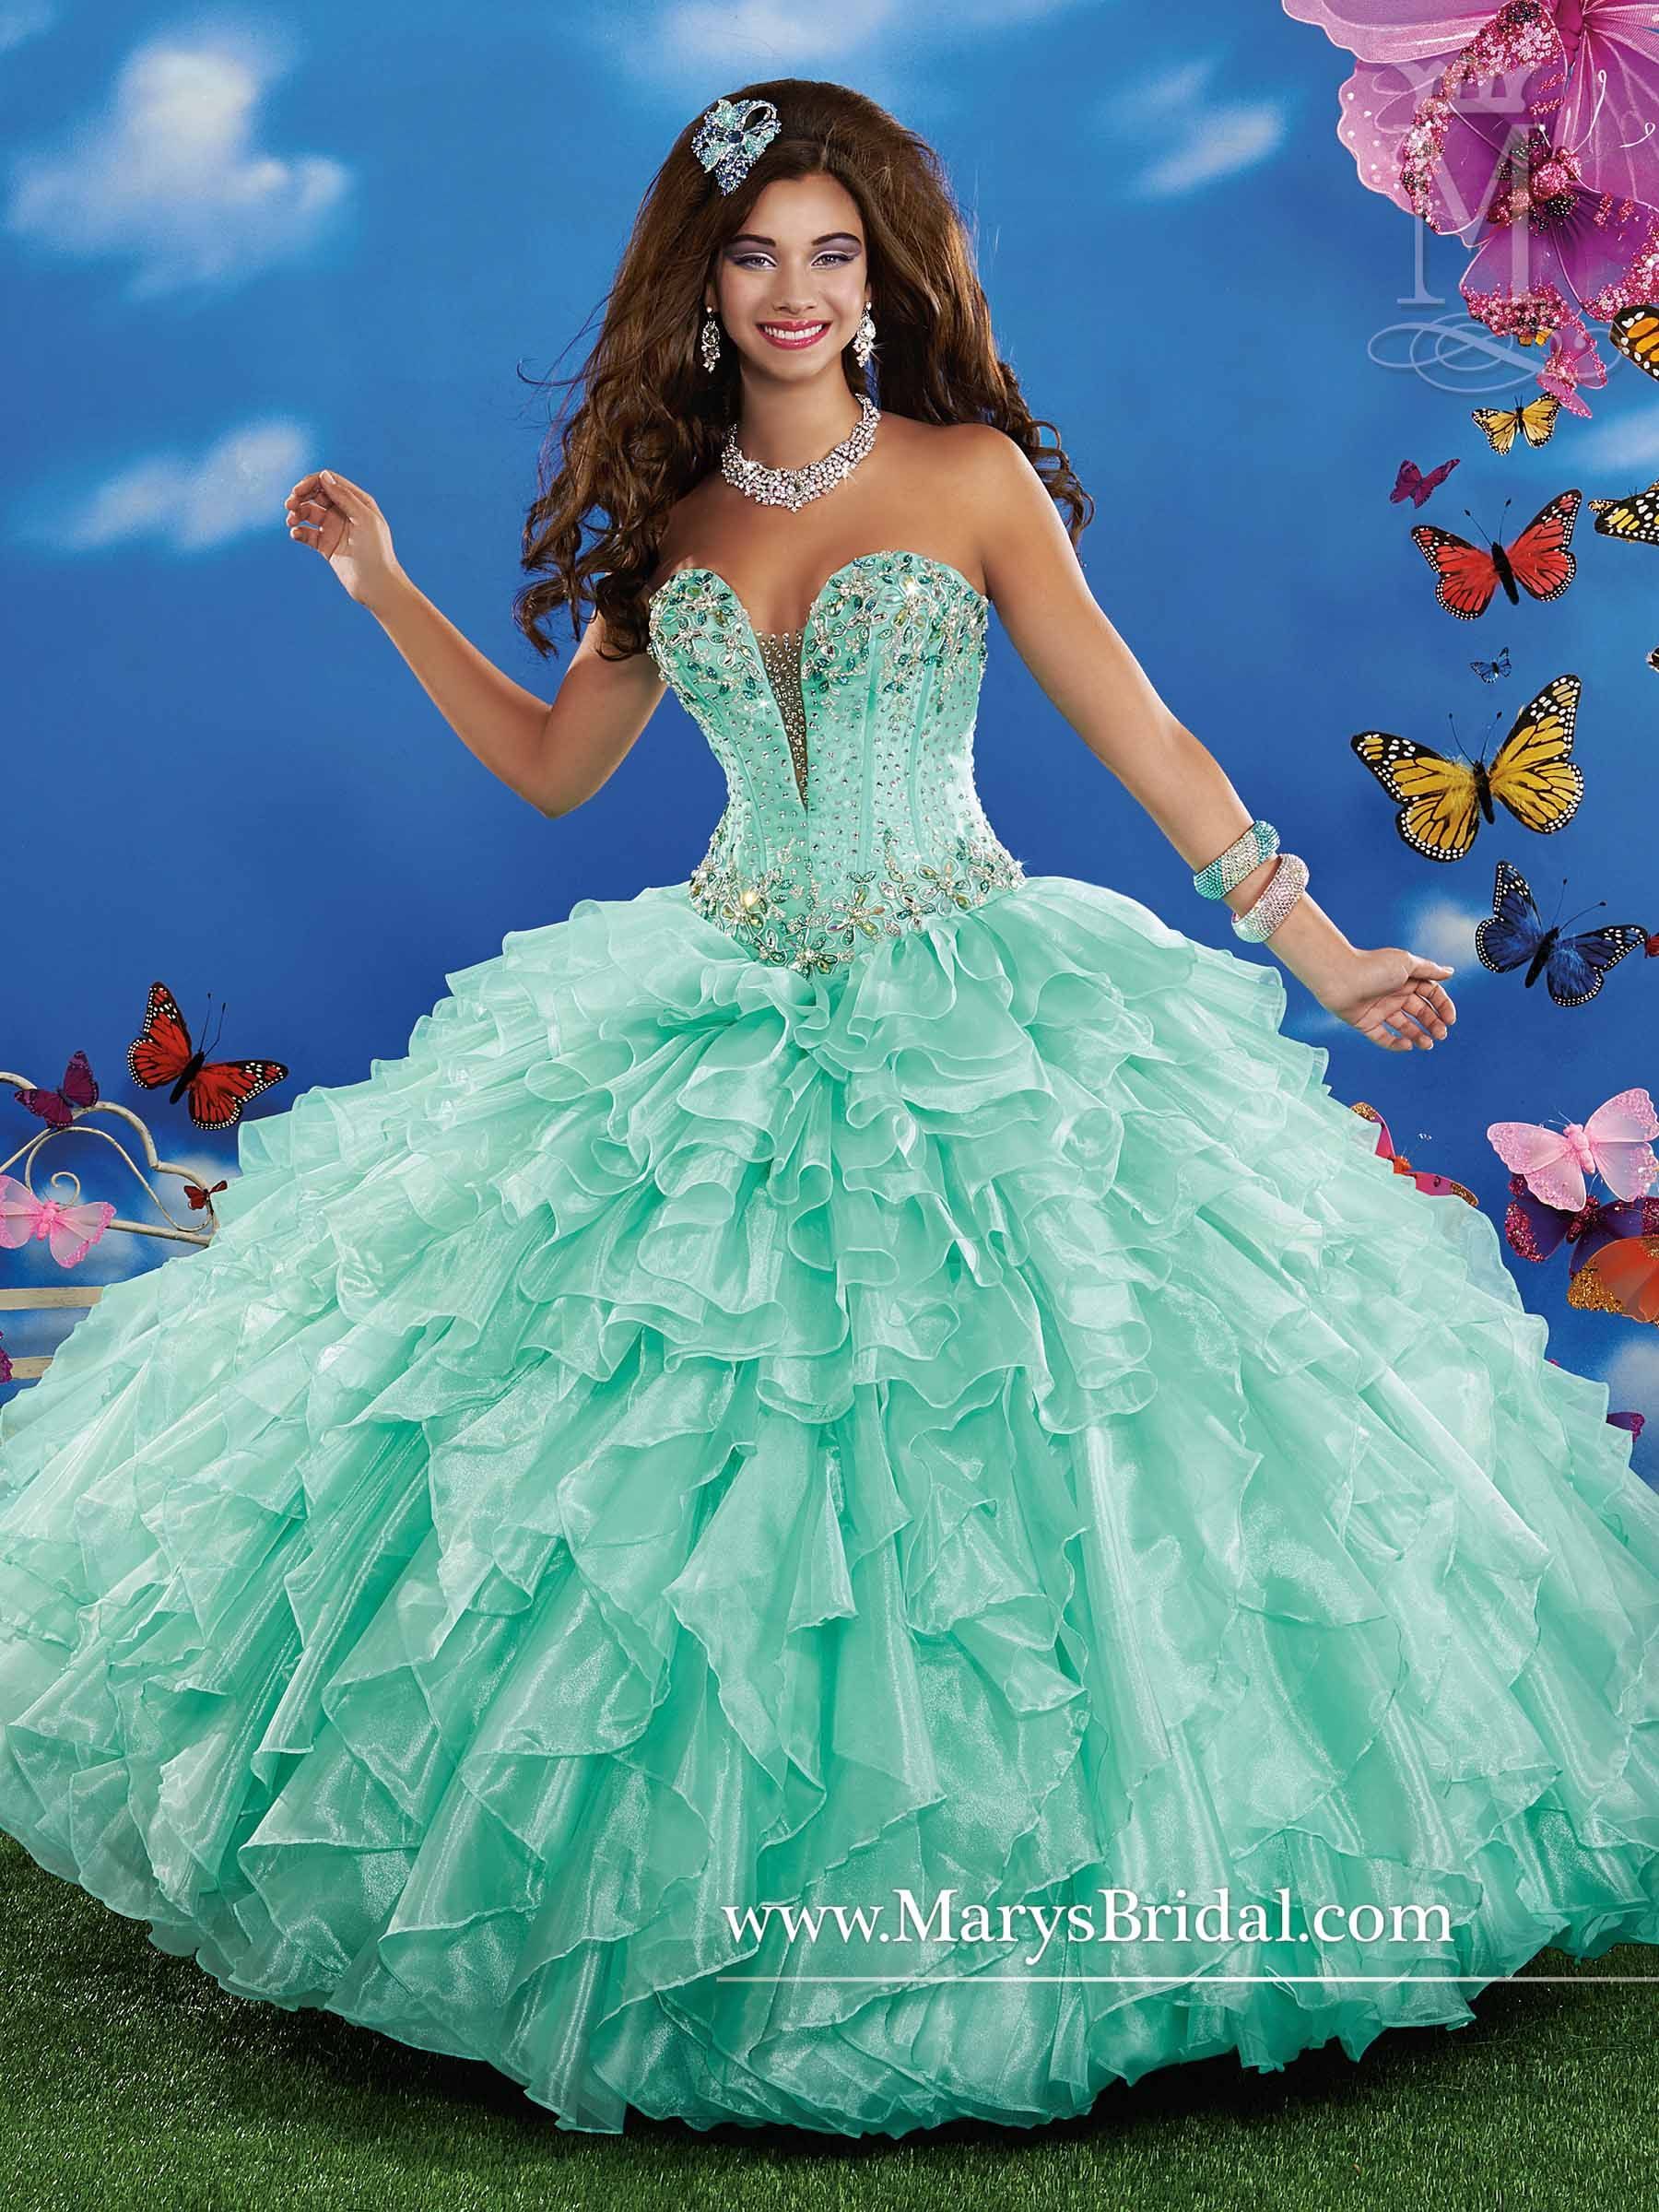 GO TO MARYSBRIDAL.COM AND FIND A STORE NEAR YOU!! | quinceanera ...